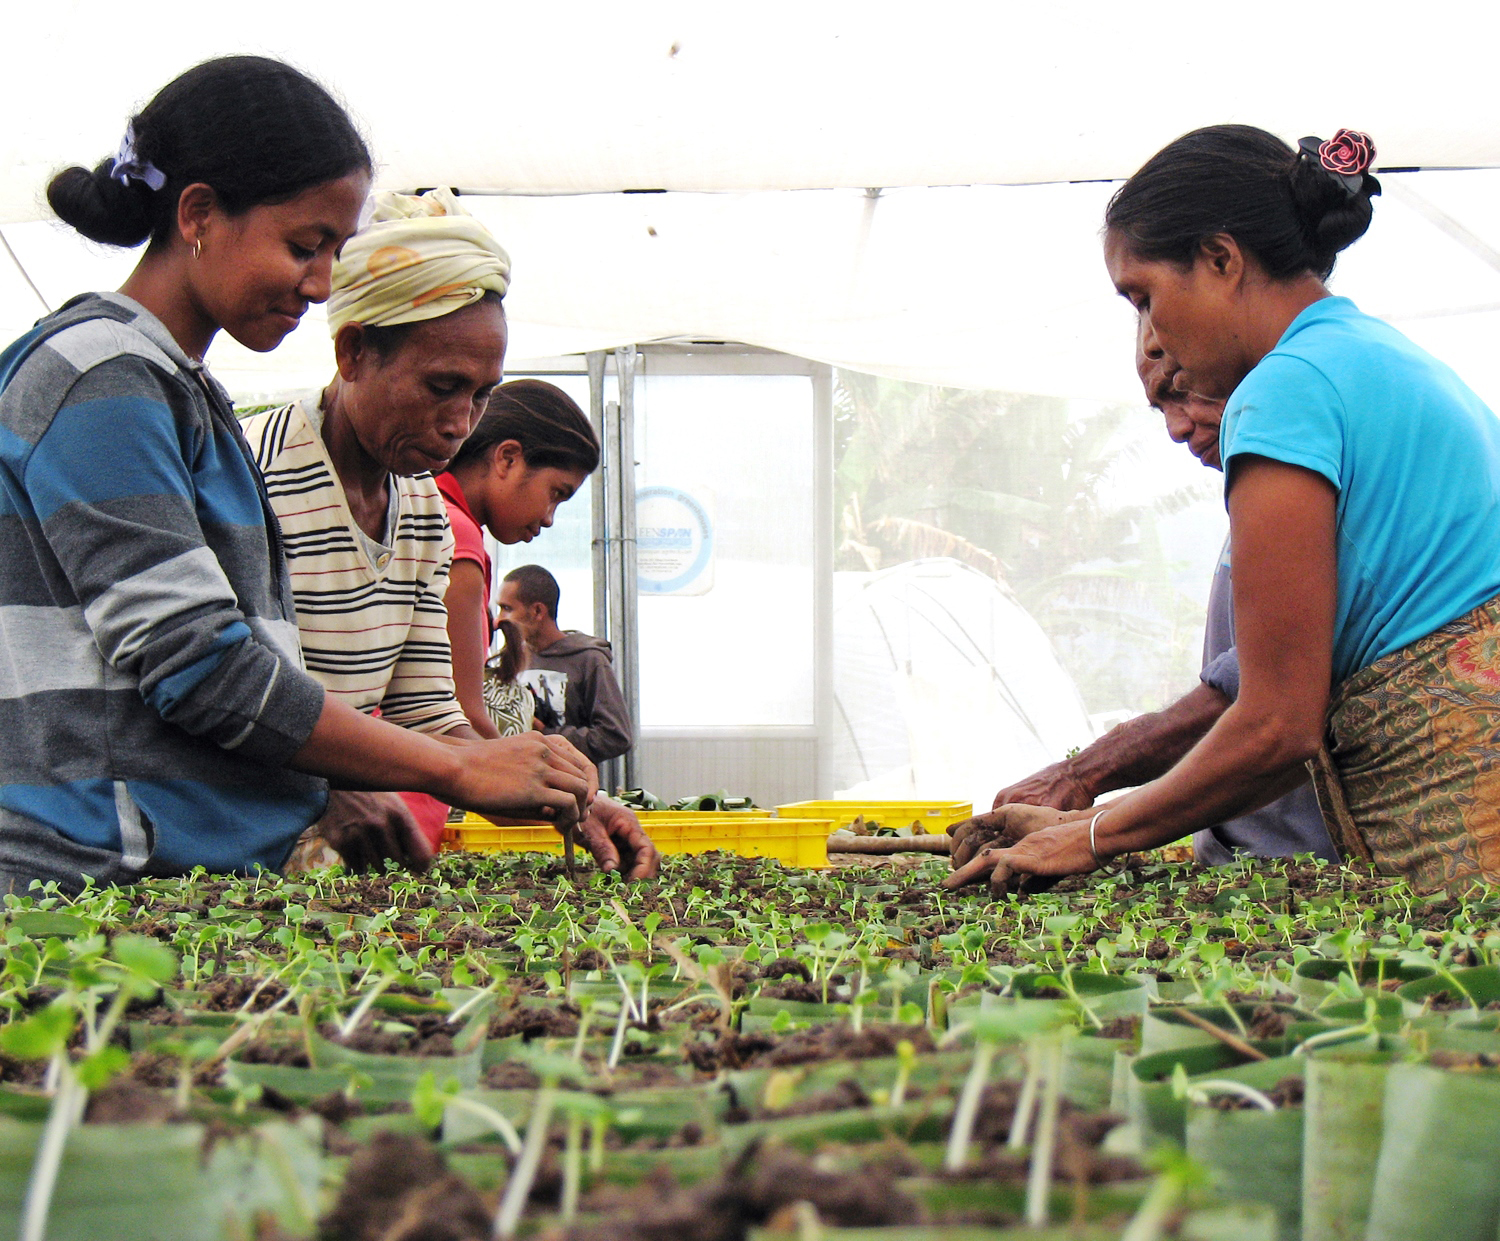 Two communities participating in USAID's horticulture value-chain project are now the owners of commercial greenhouses.